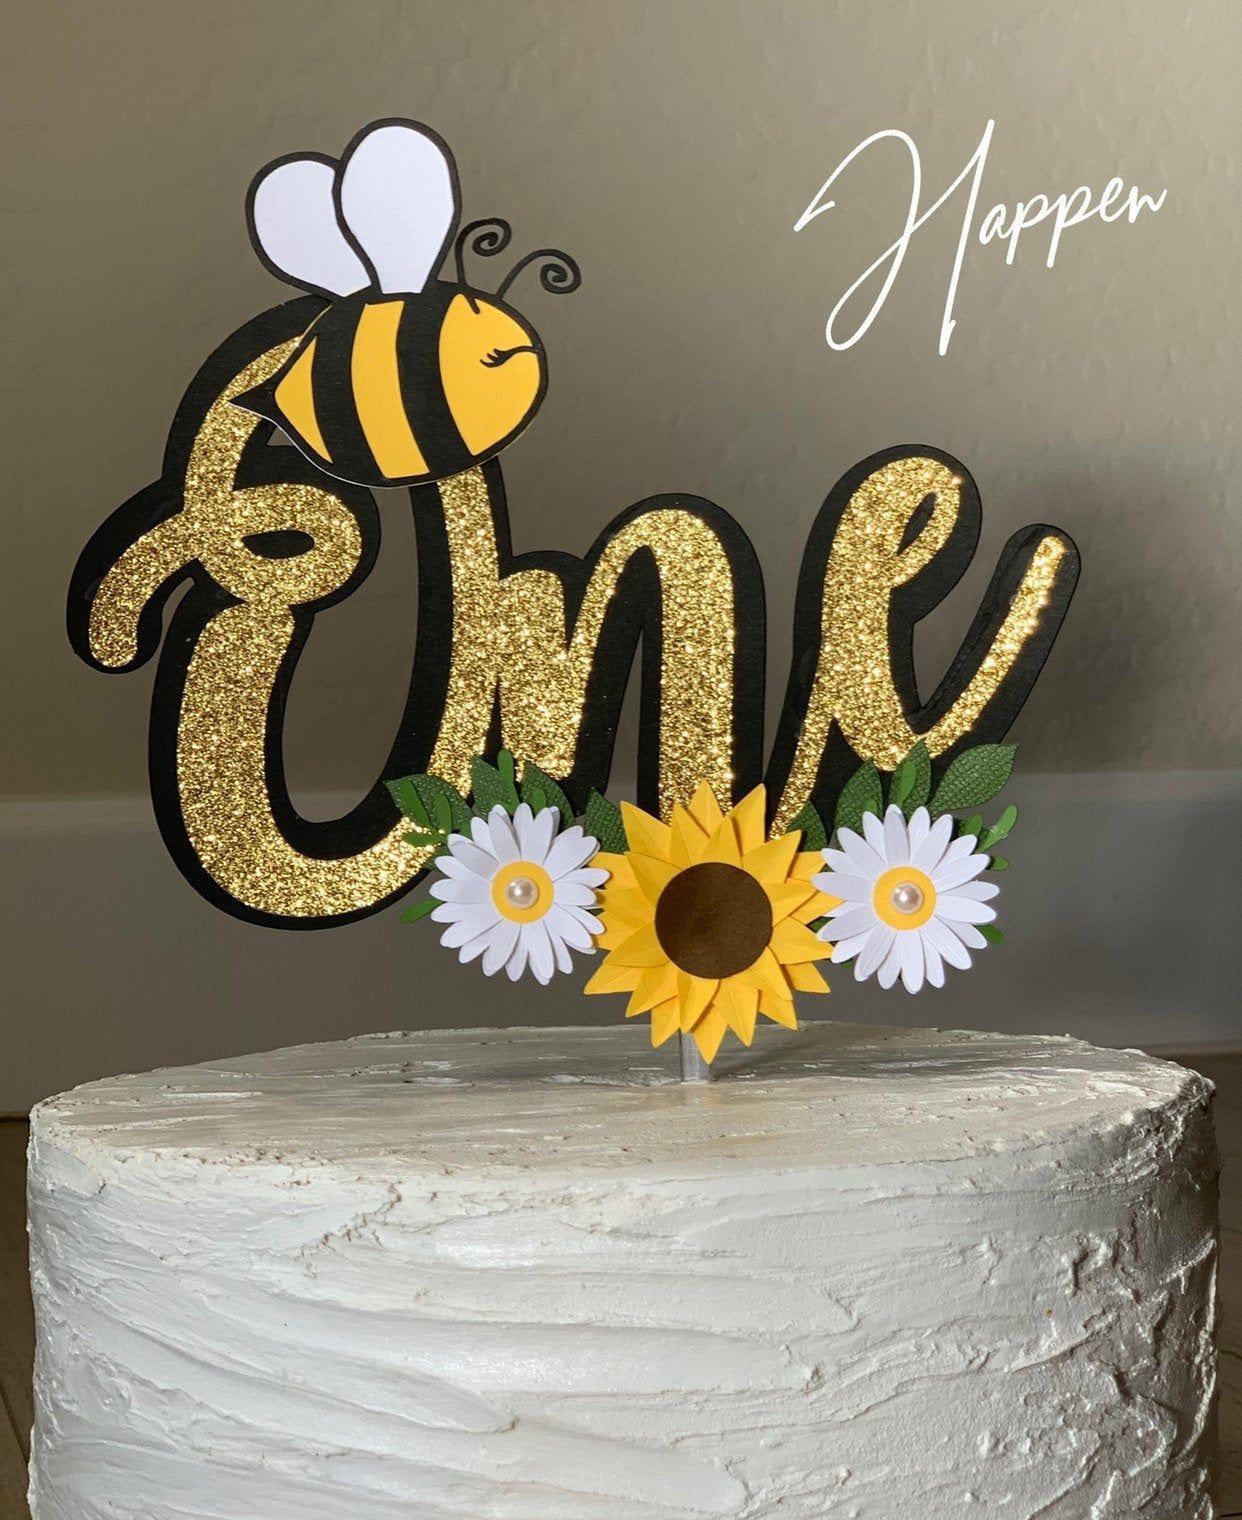 bumble bee sunflower baby shower cake topper yellow peony baby on flower cake topper edible fondant flower baby by SweetNewCreations